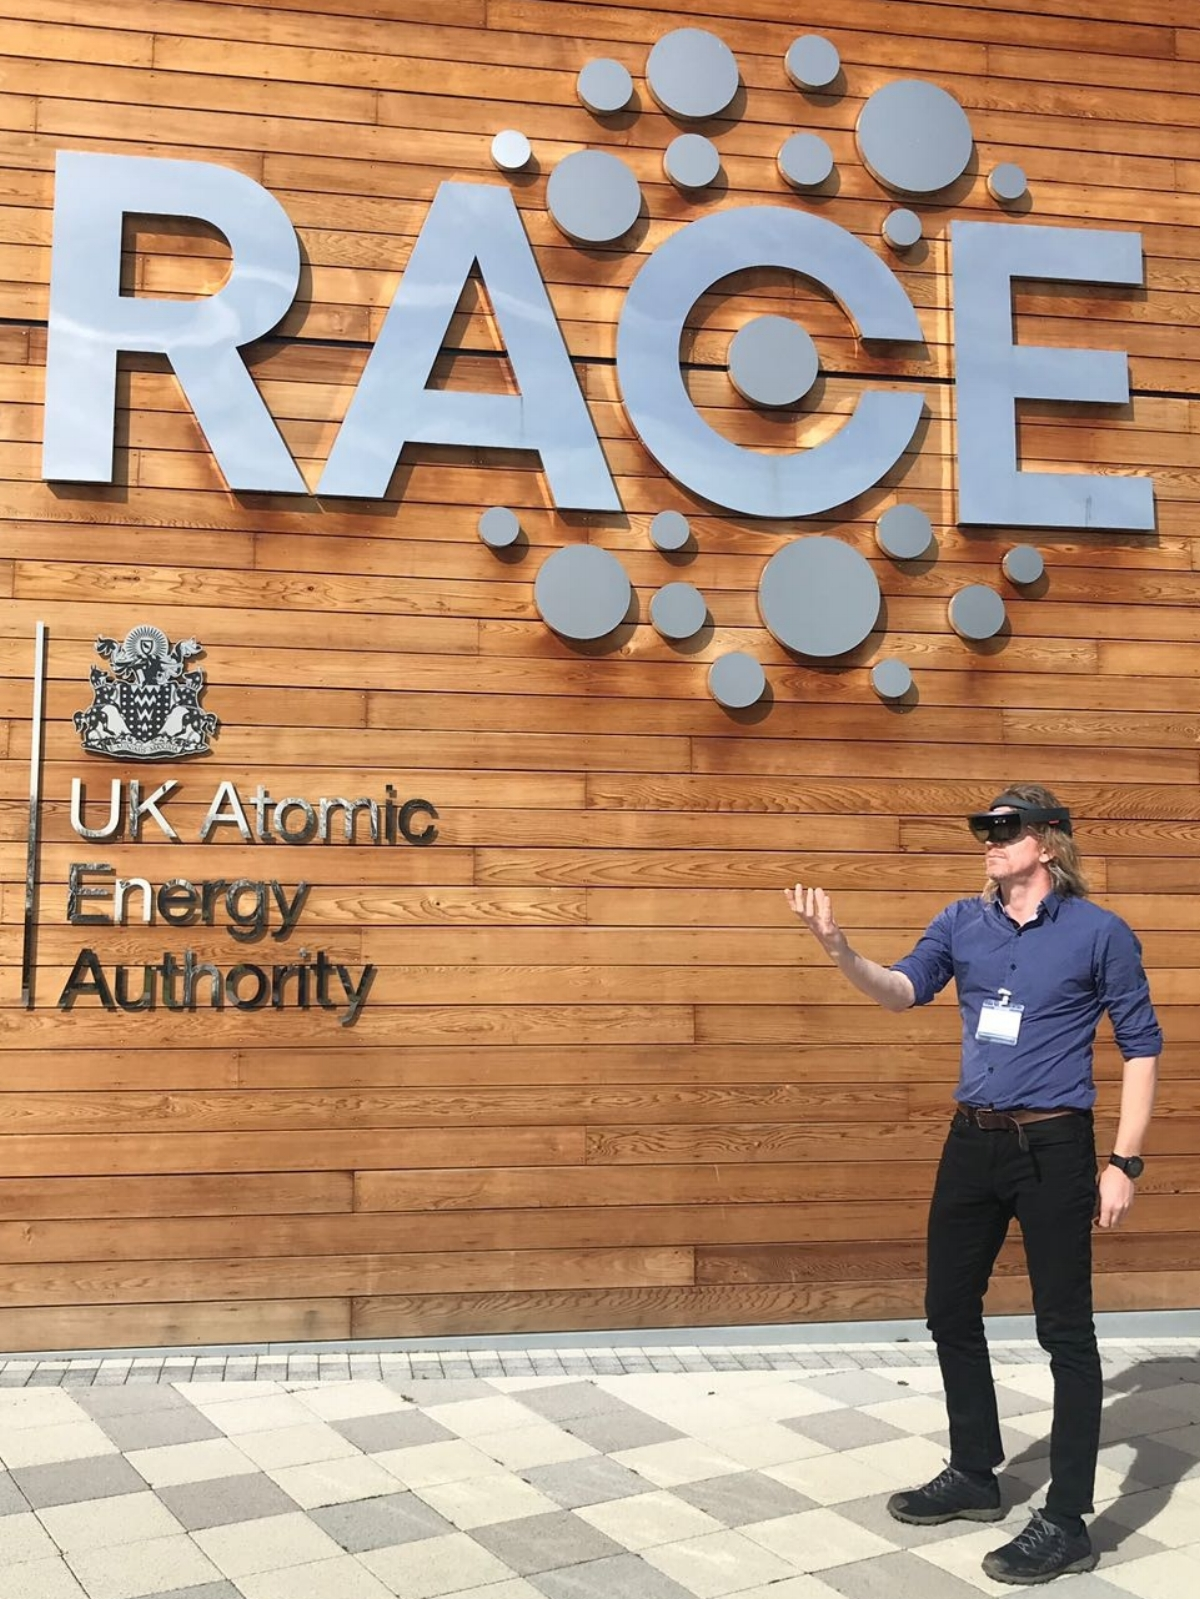 Steve visits RACE at the UK Atomic Energy Authority at Culham.